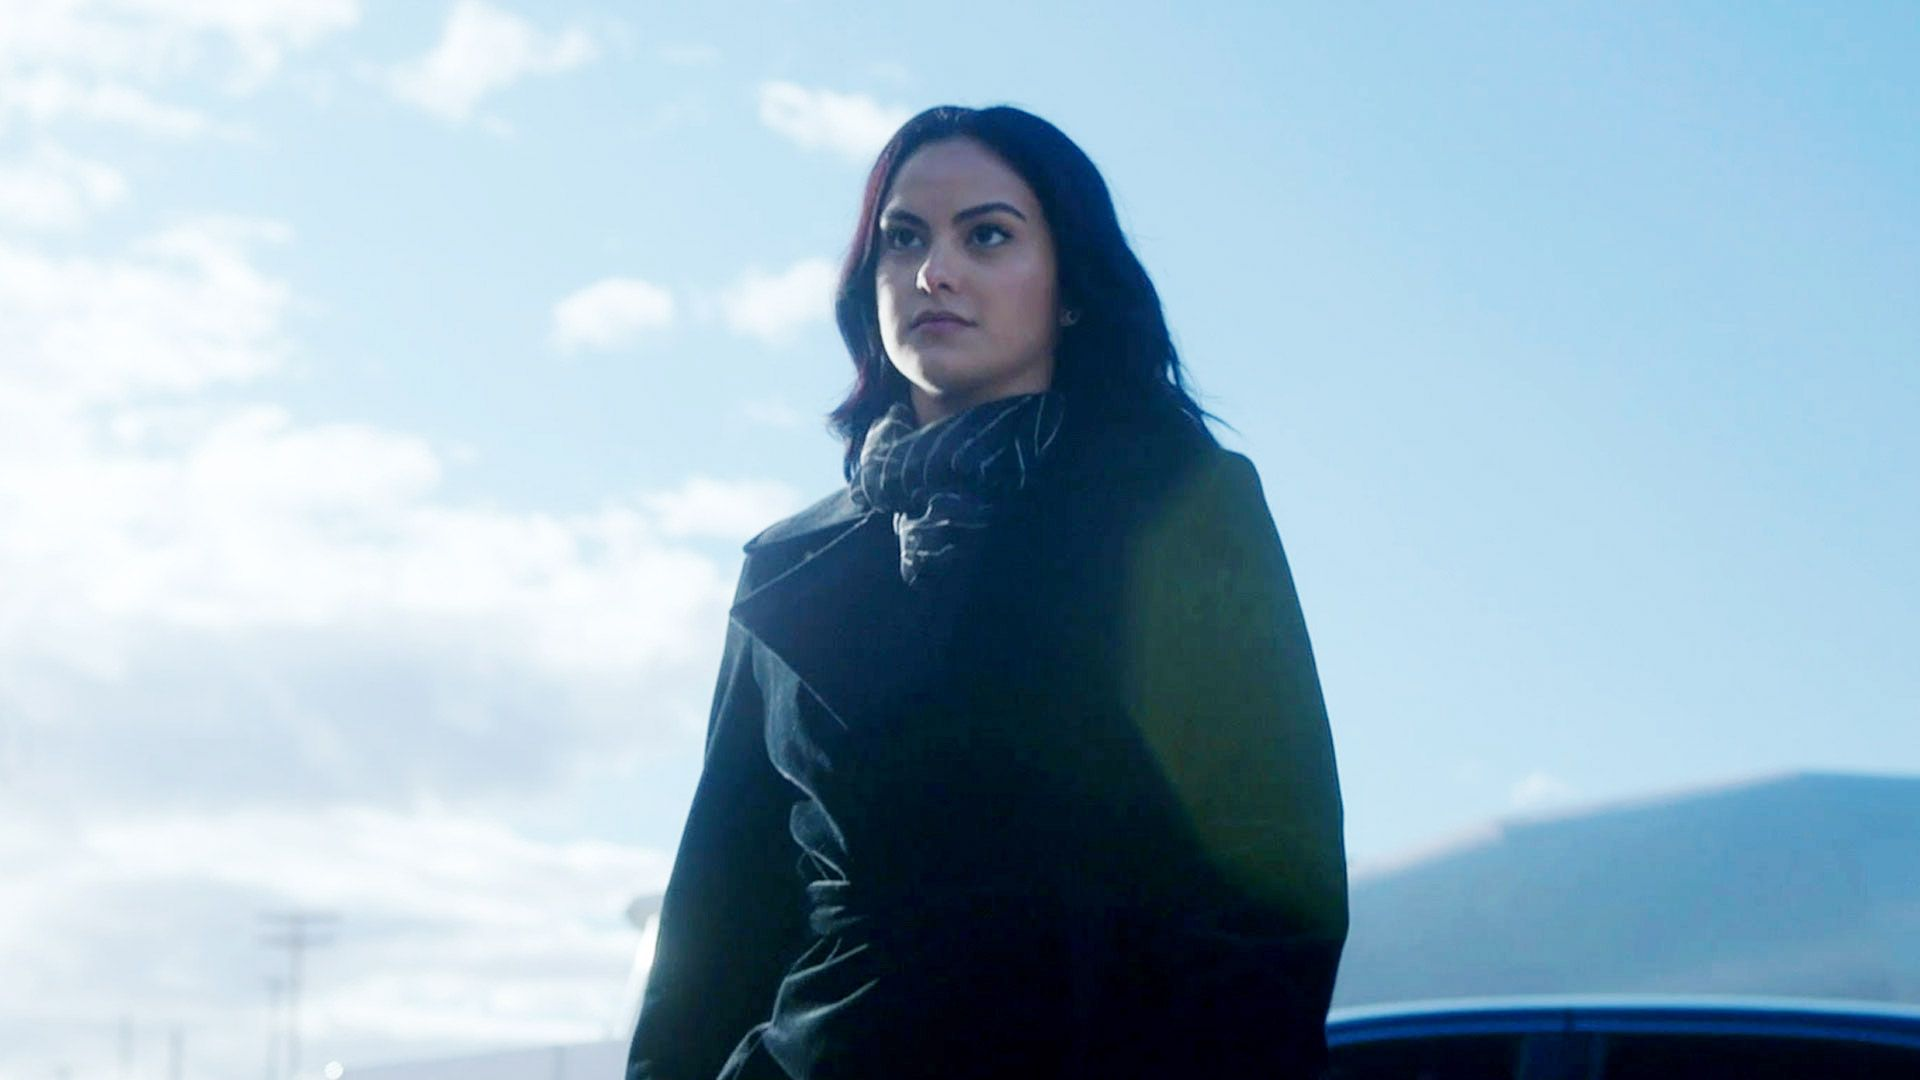 however: the gorgeous coat veronica wore in this scene absolutely must be acknowledged